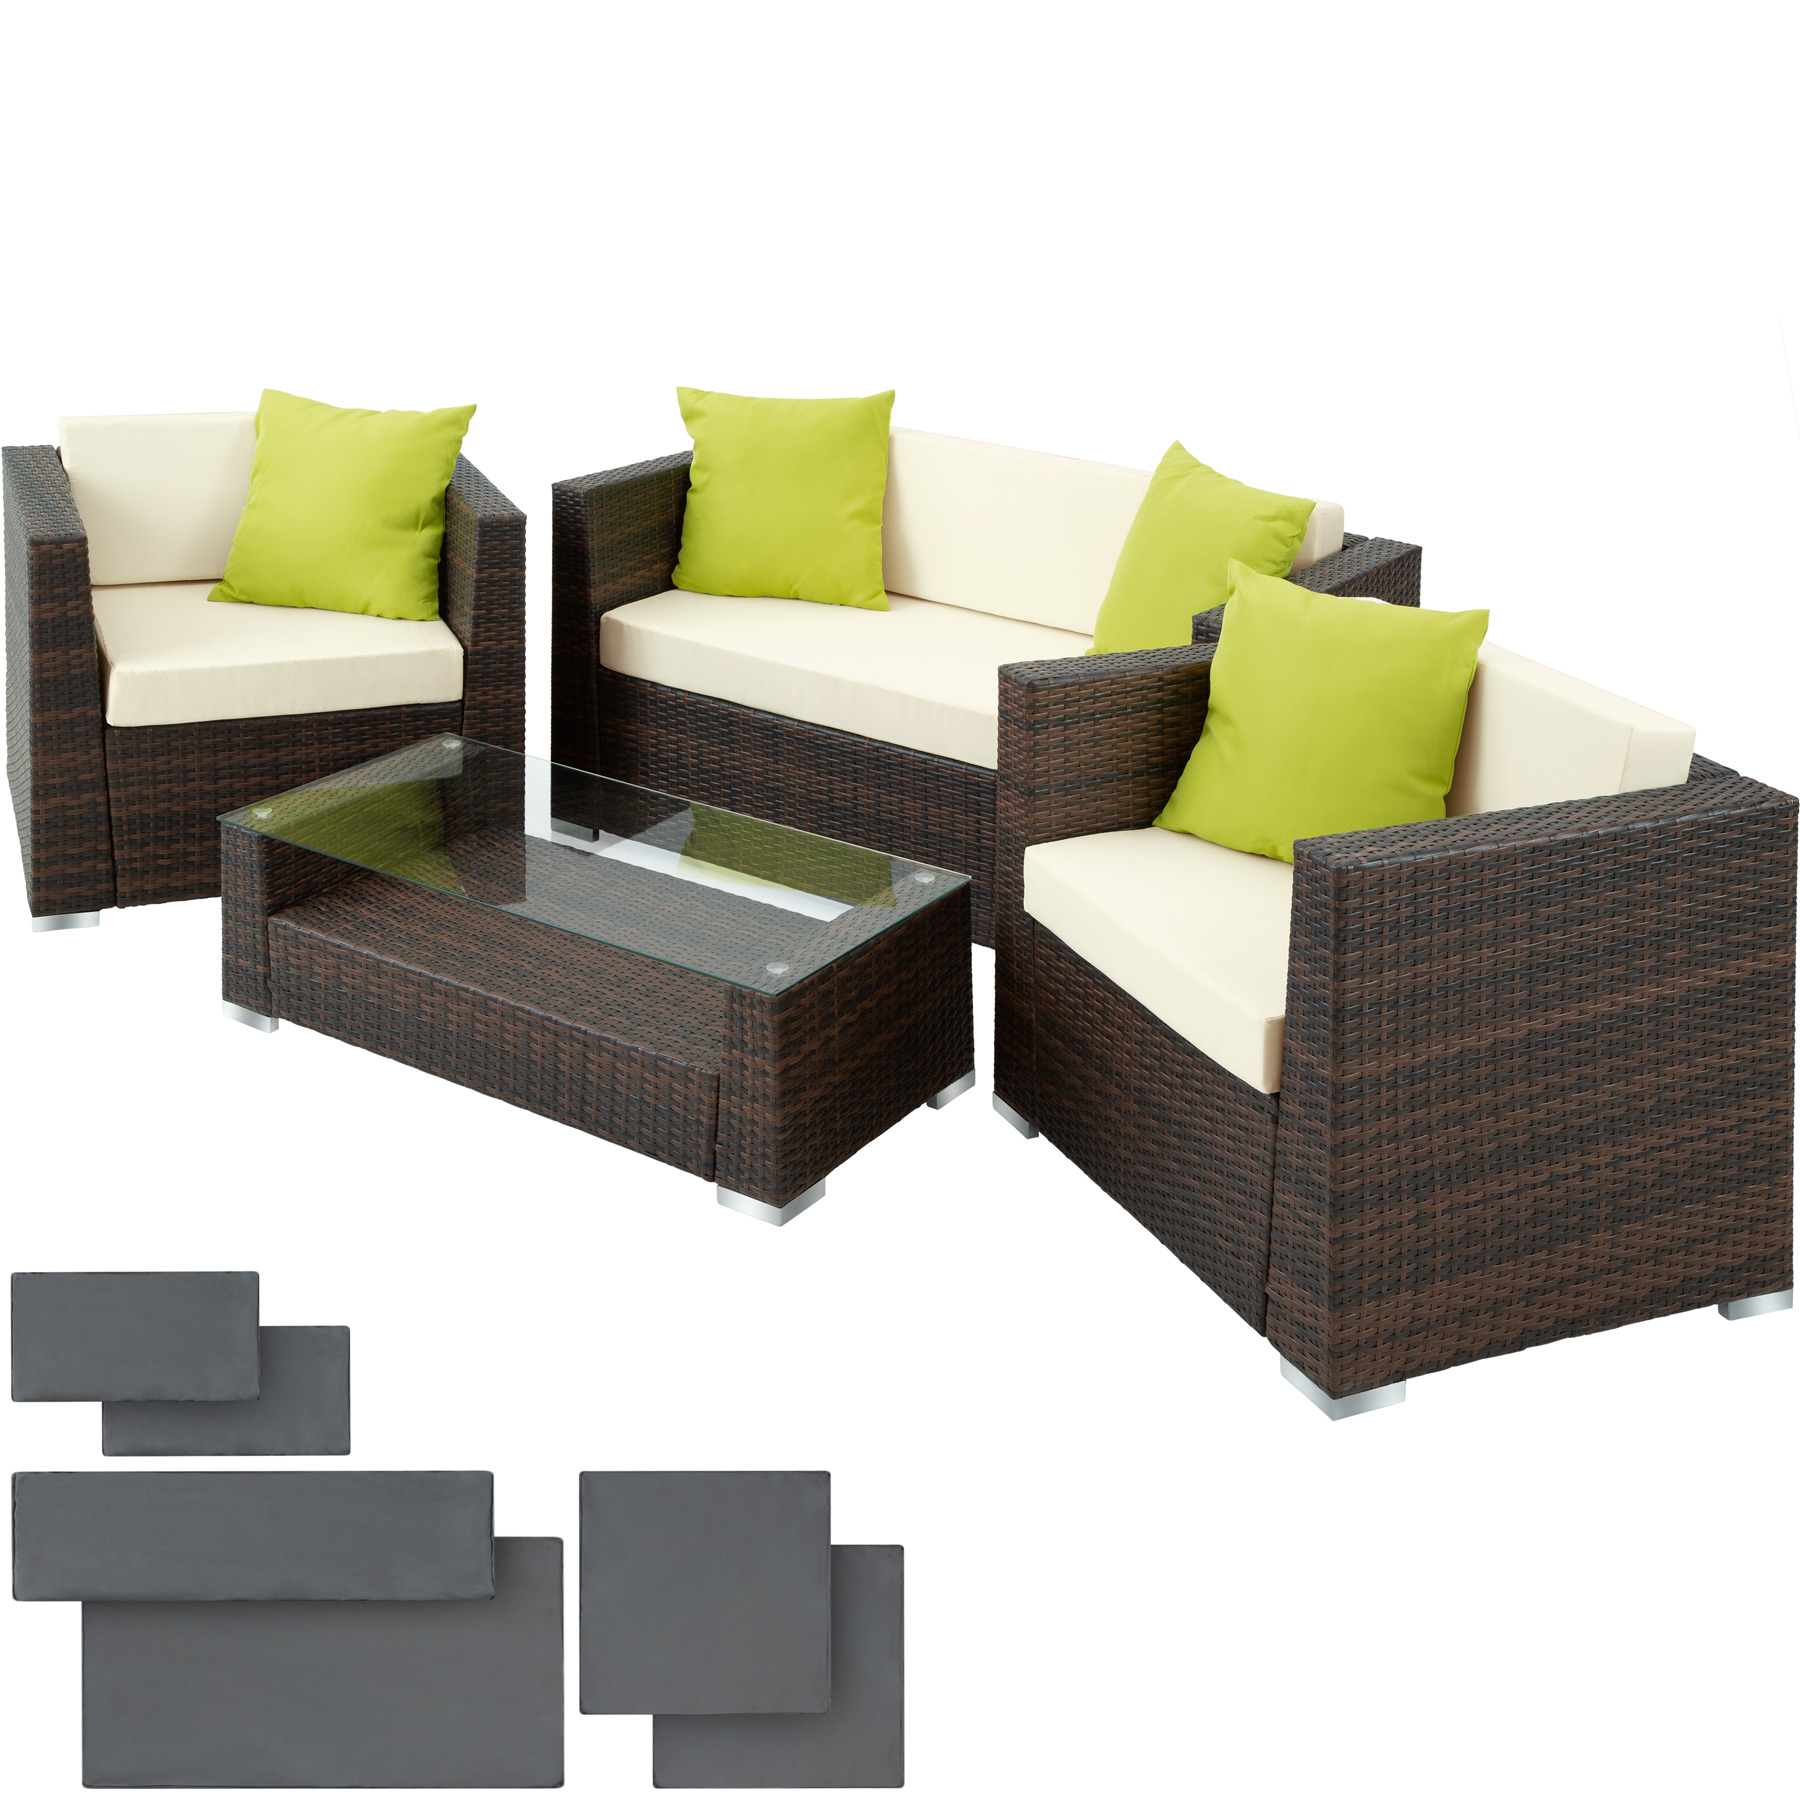 poly rattan aluminium garnitur sitzgruppe rattanm bel gartenm bel set bs ebay. Black Bedroom Furniture Sets. Home Design Ideas